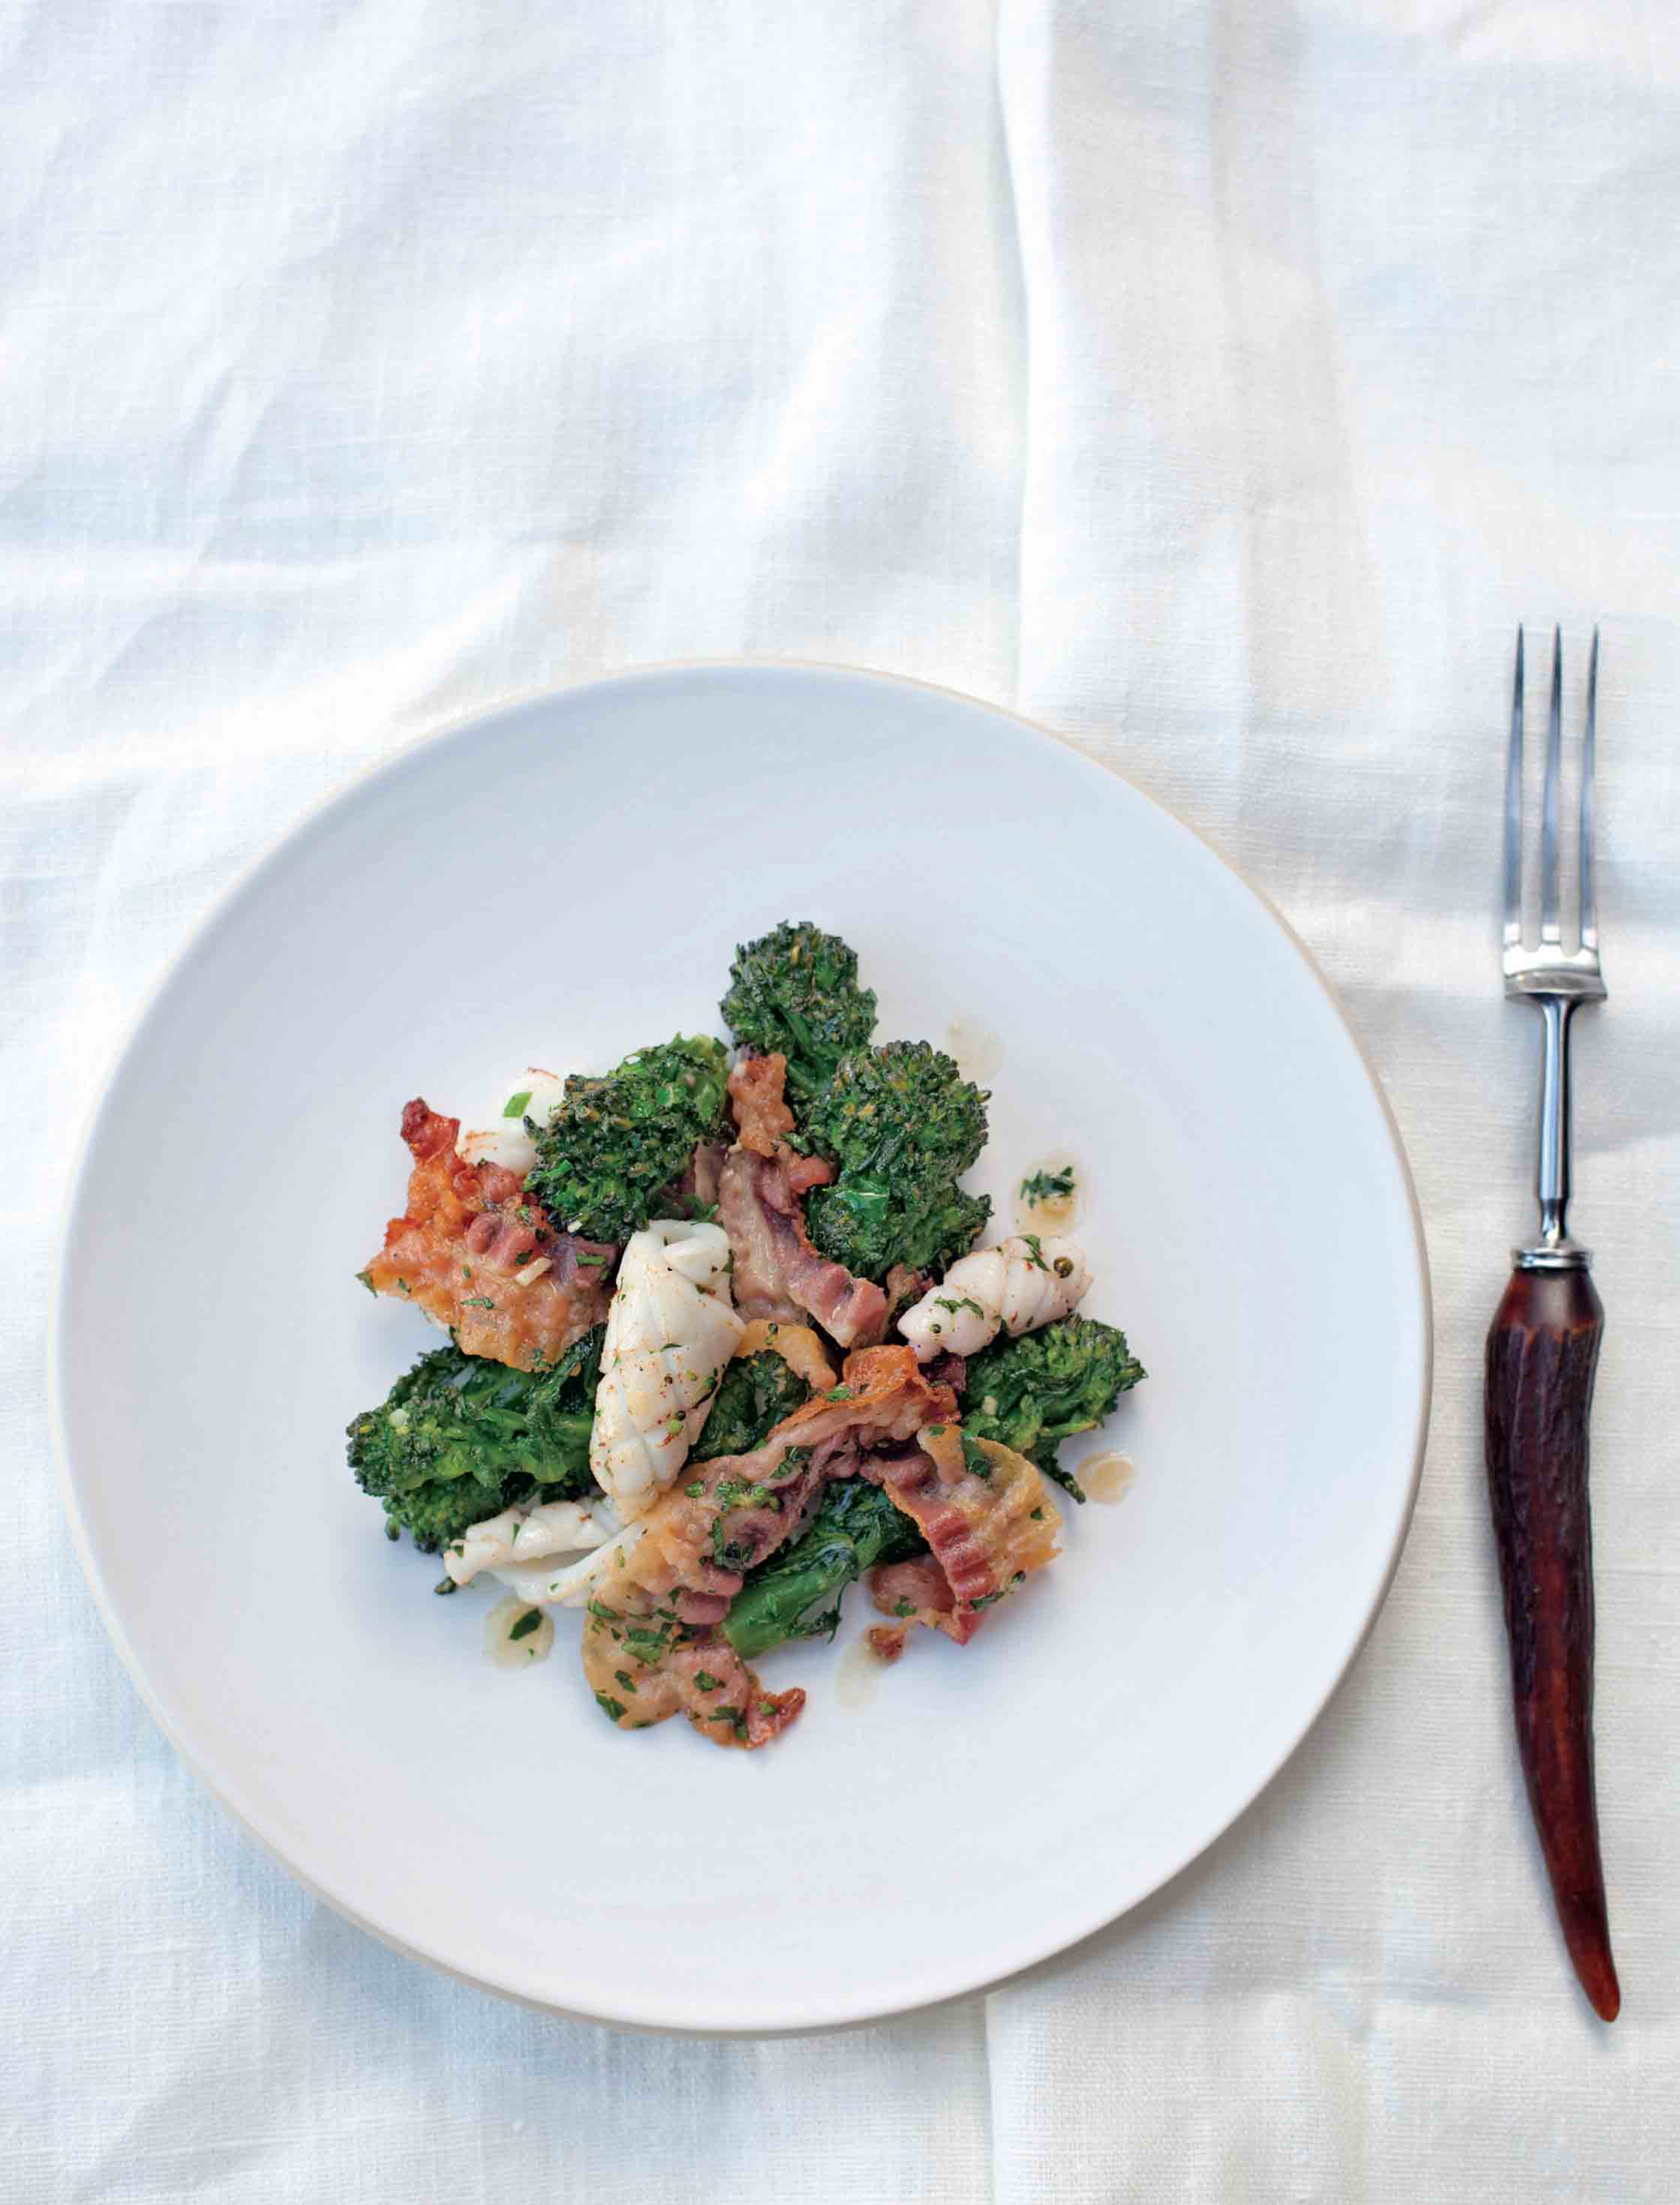 Sautéed purple sprouting broccoli with pancetta and squid